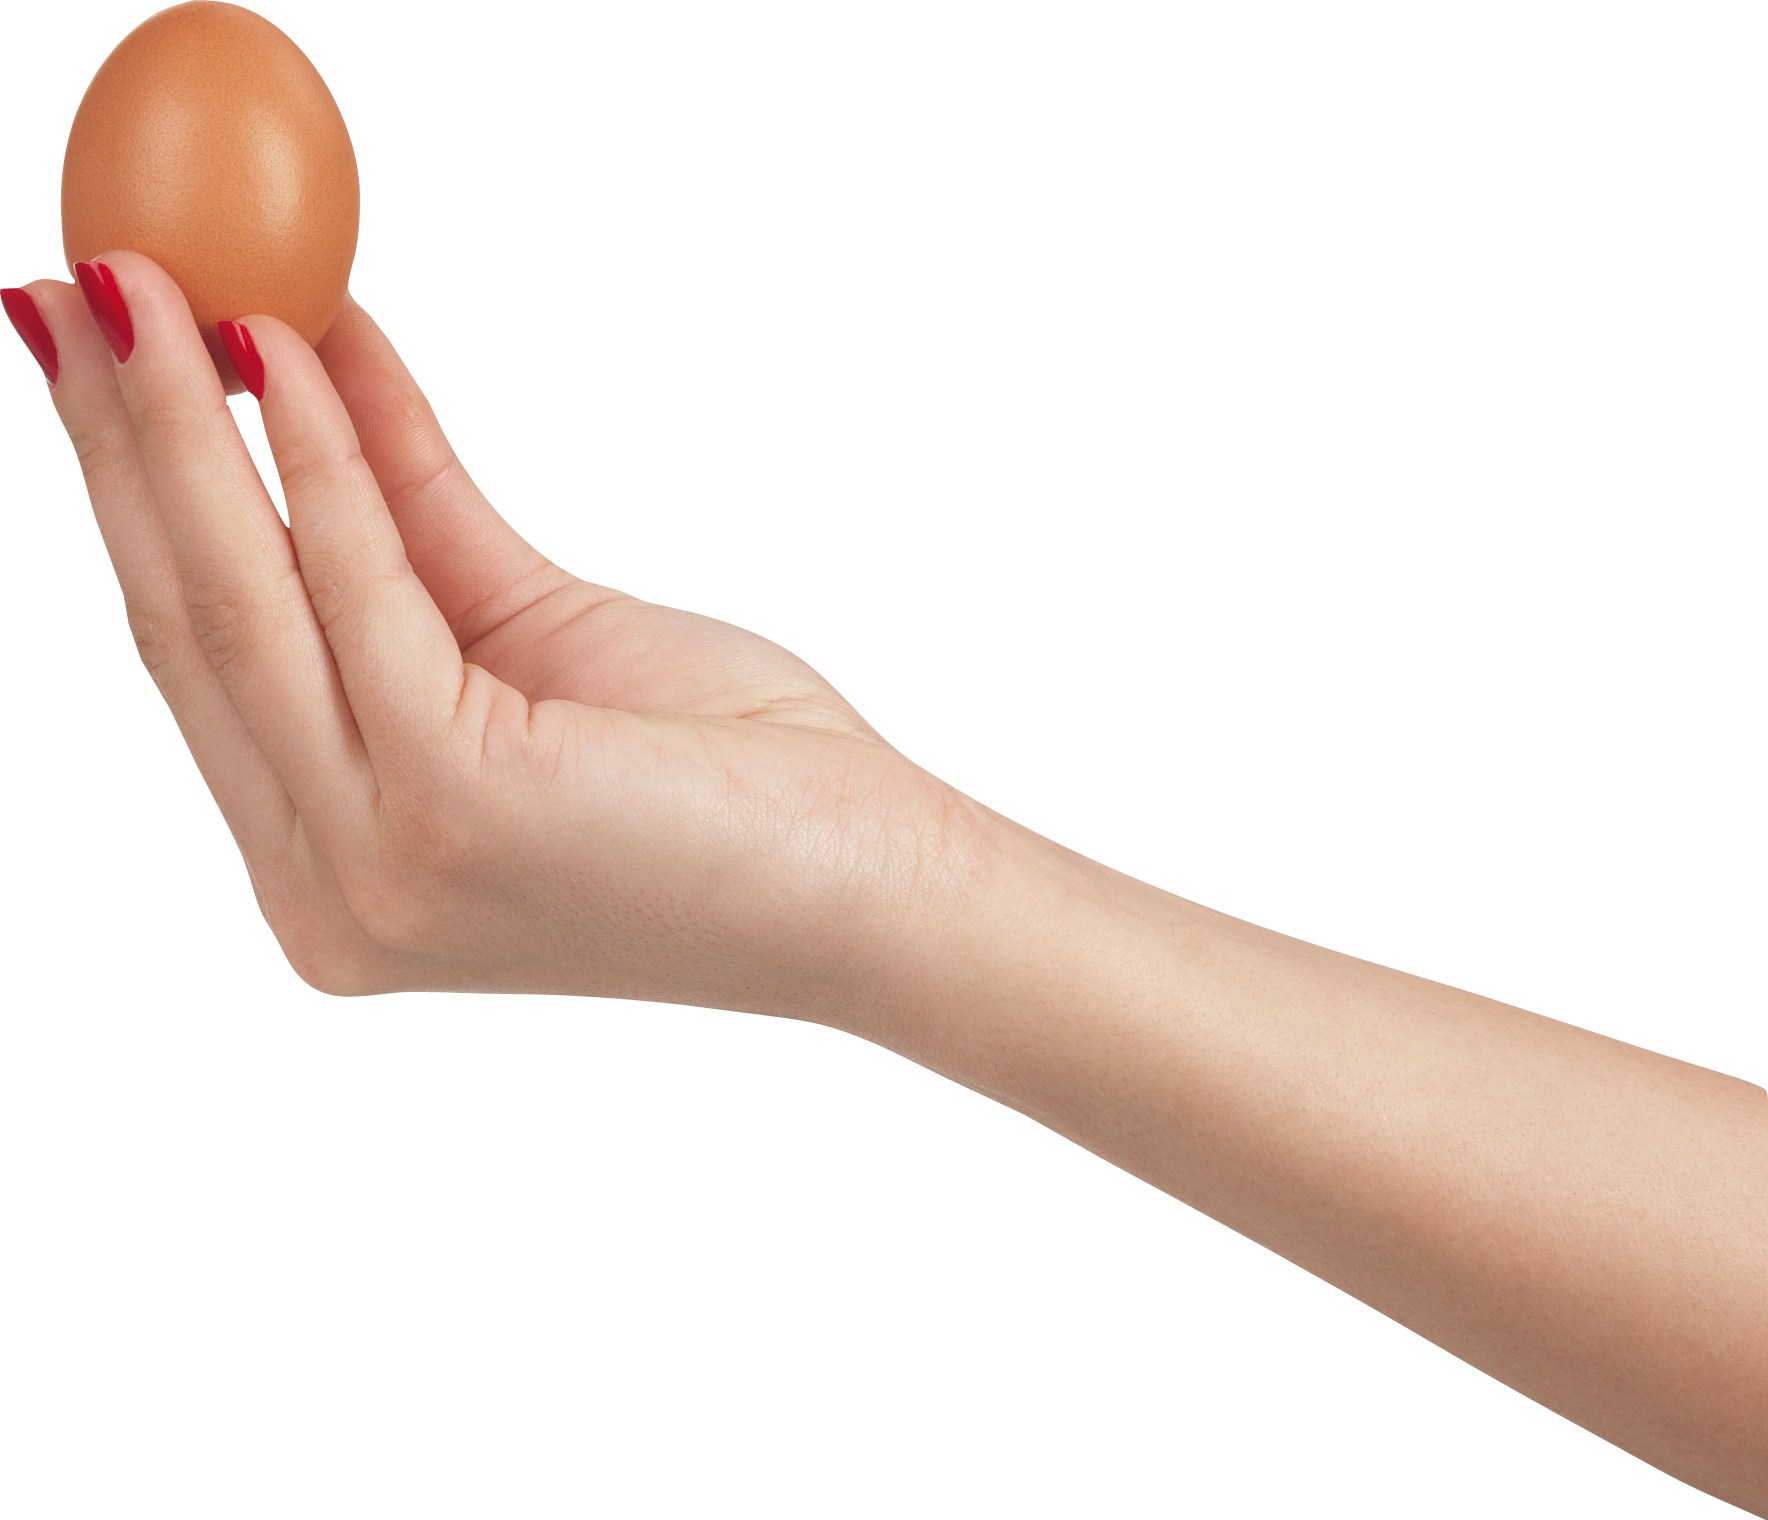 Holding egg isolated stock. Hand clipart arm